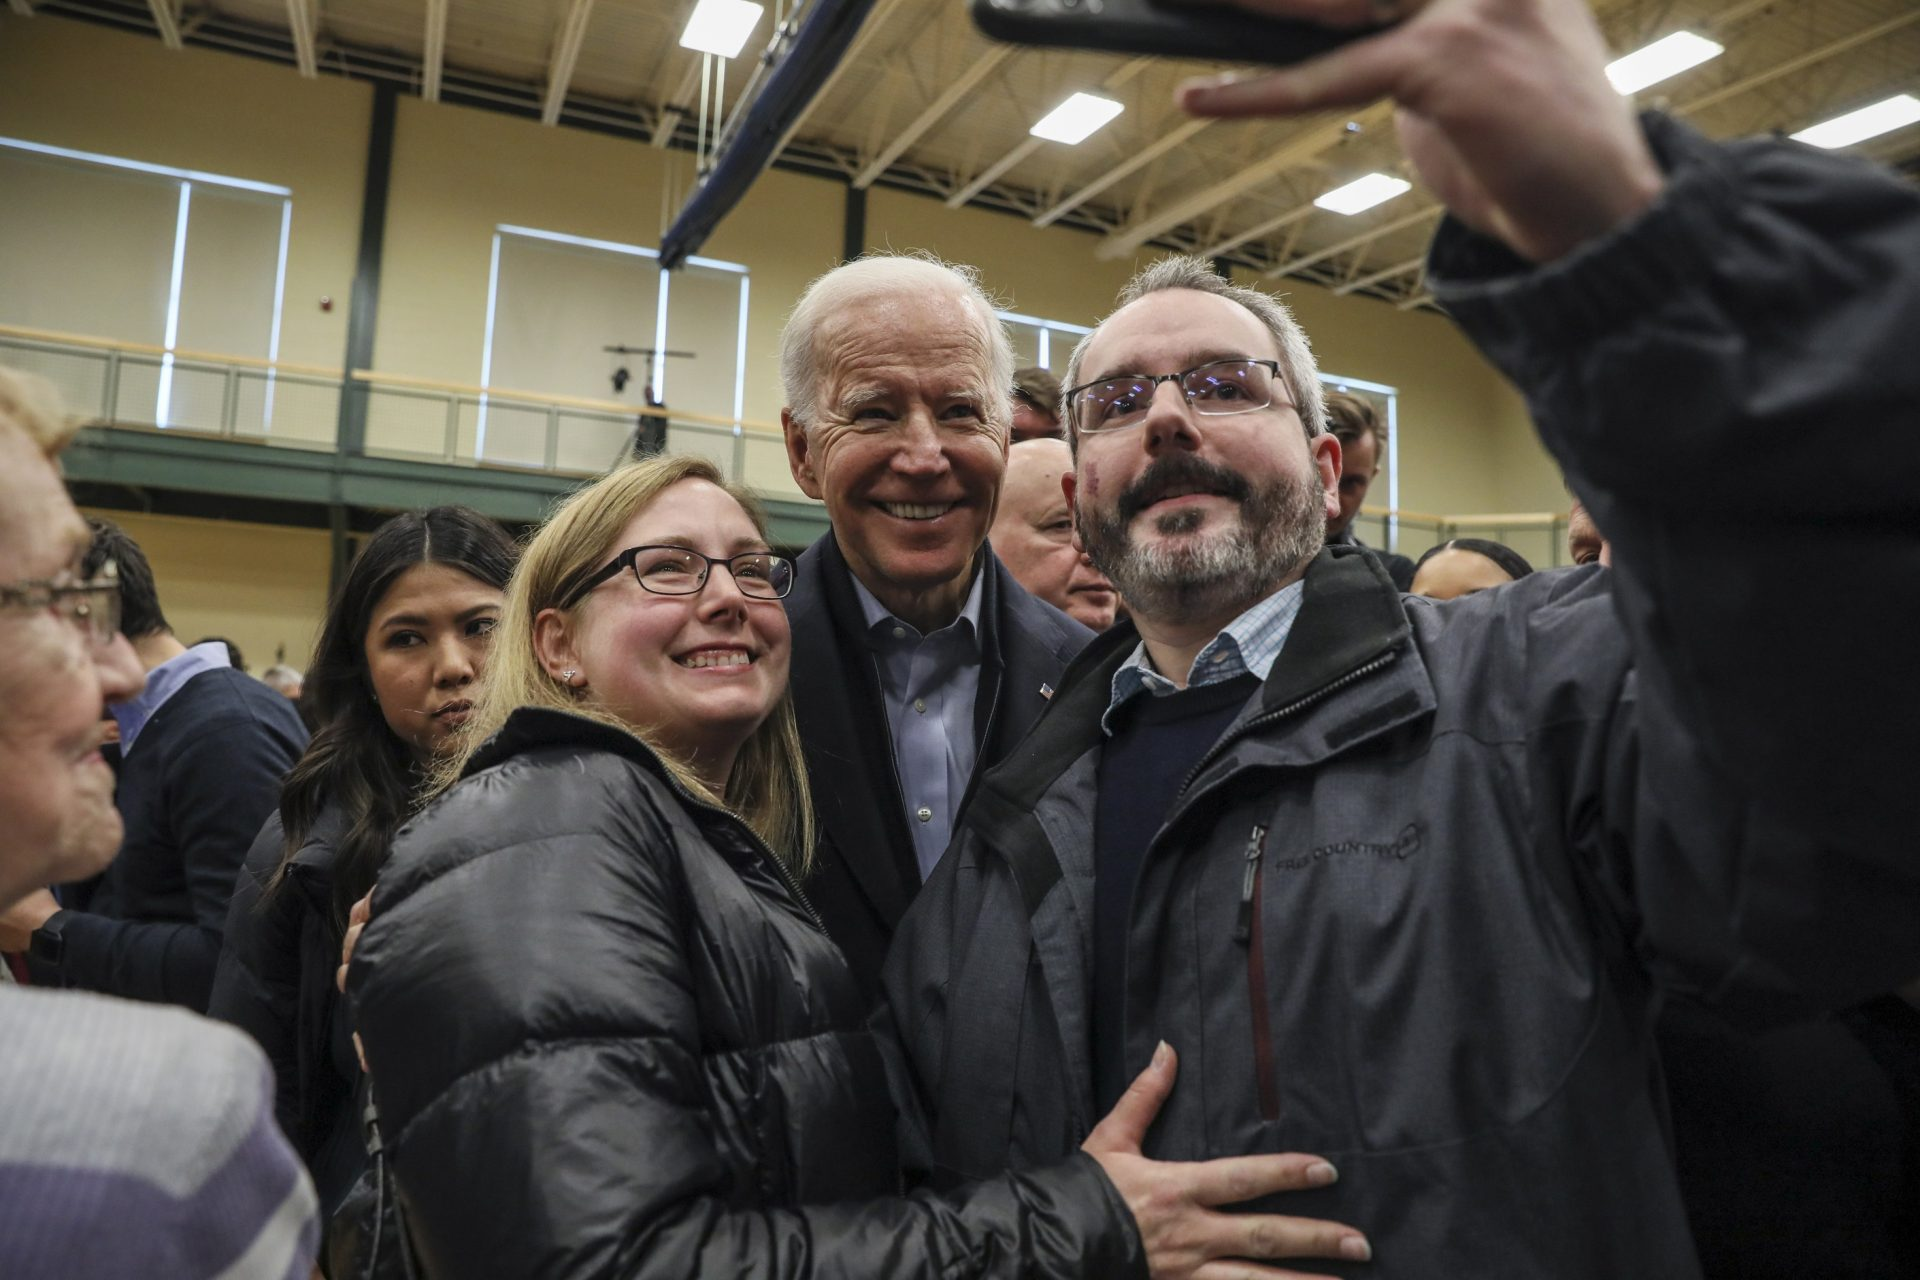 Democratic presidential former Vice President Joe Biden greets supporters after speaking at a campaign event in Nashua, N.H. Sunday, Dec. 8, 2019